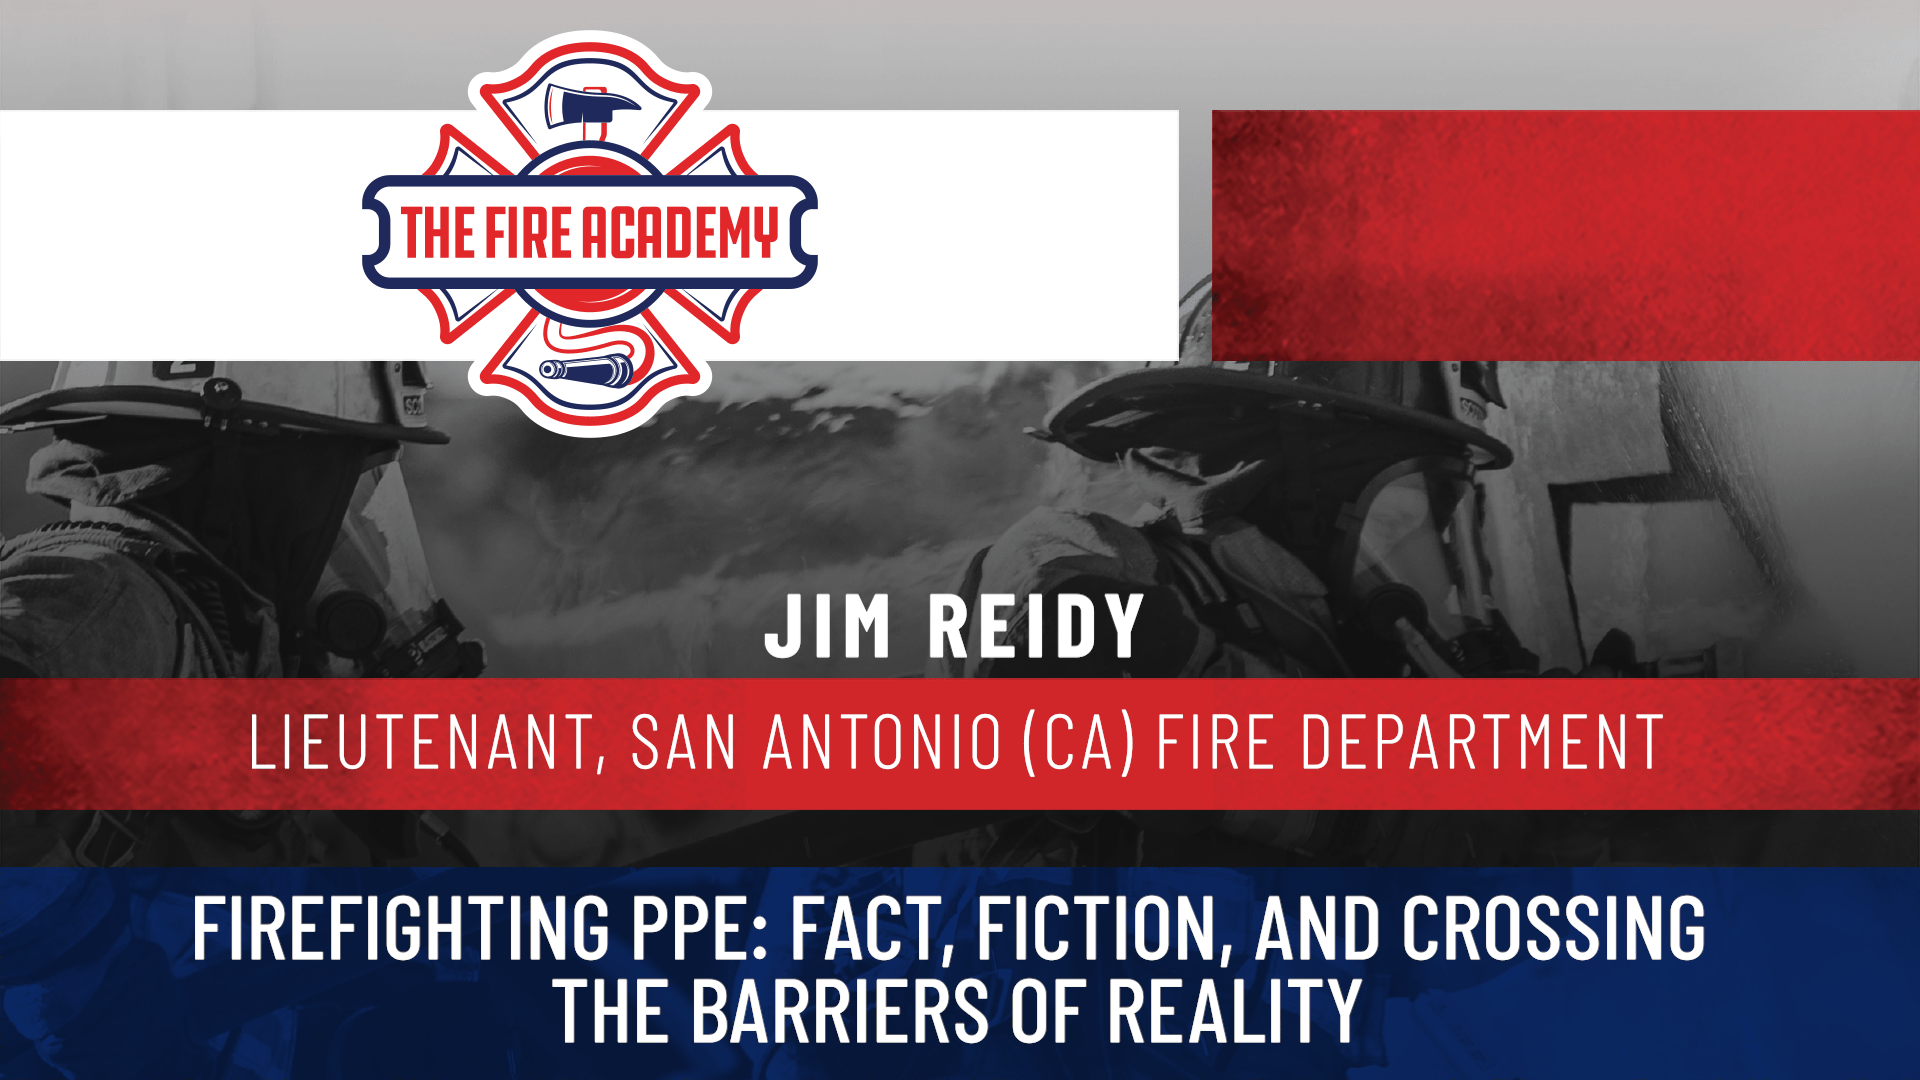 Firefighting PPE: Fact, Fiction, and Crossing the Barriers of Reality